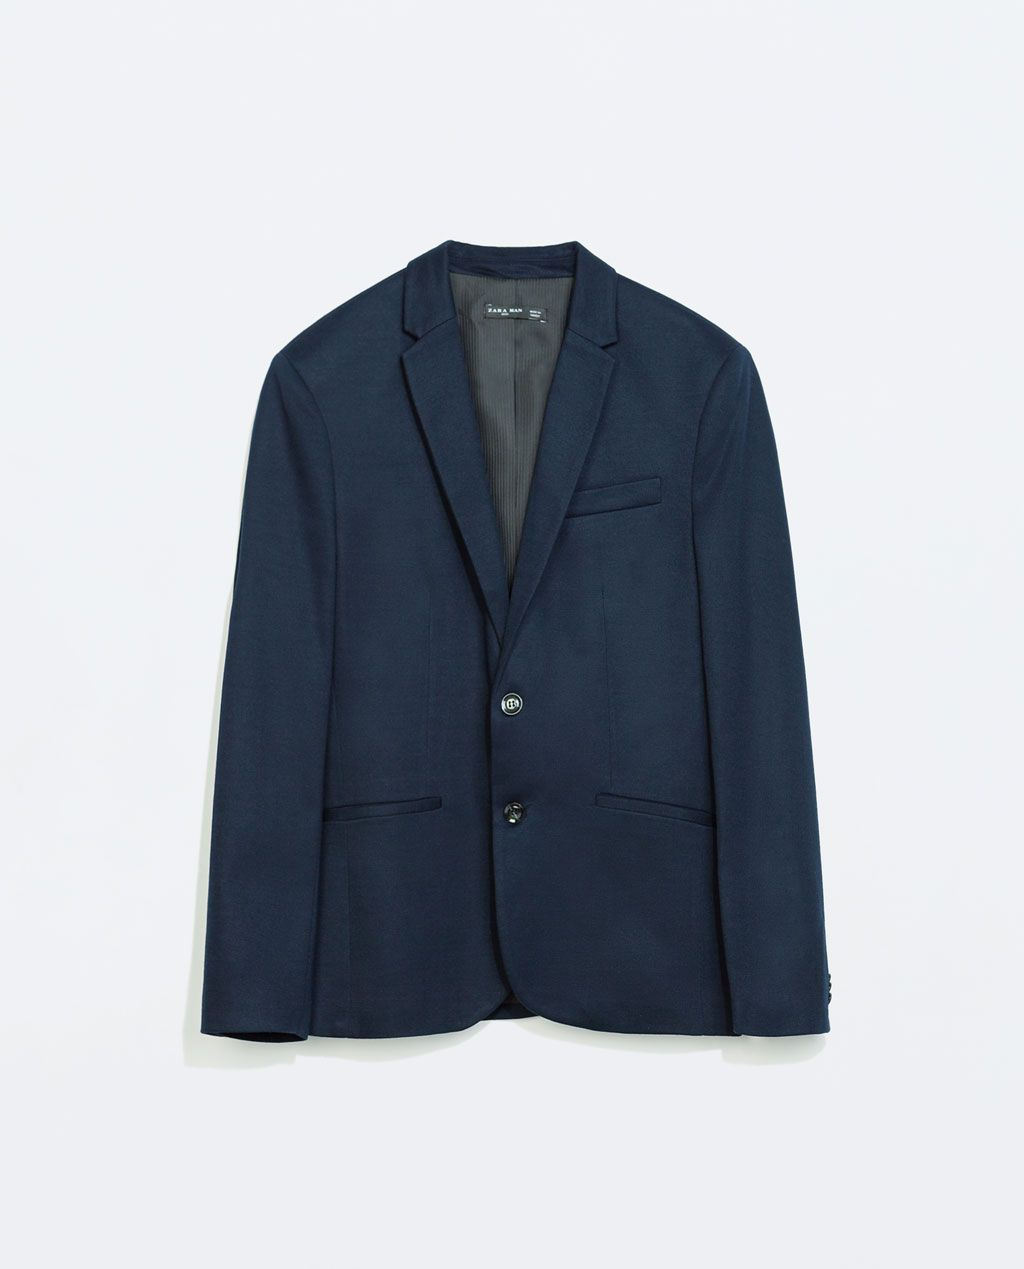 23ca78ccbc ZARA - MAN - BASIC BLAZER | men's fashion | Blazer, Zara man, Mens ...